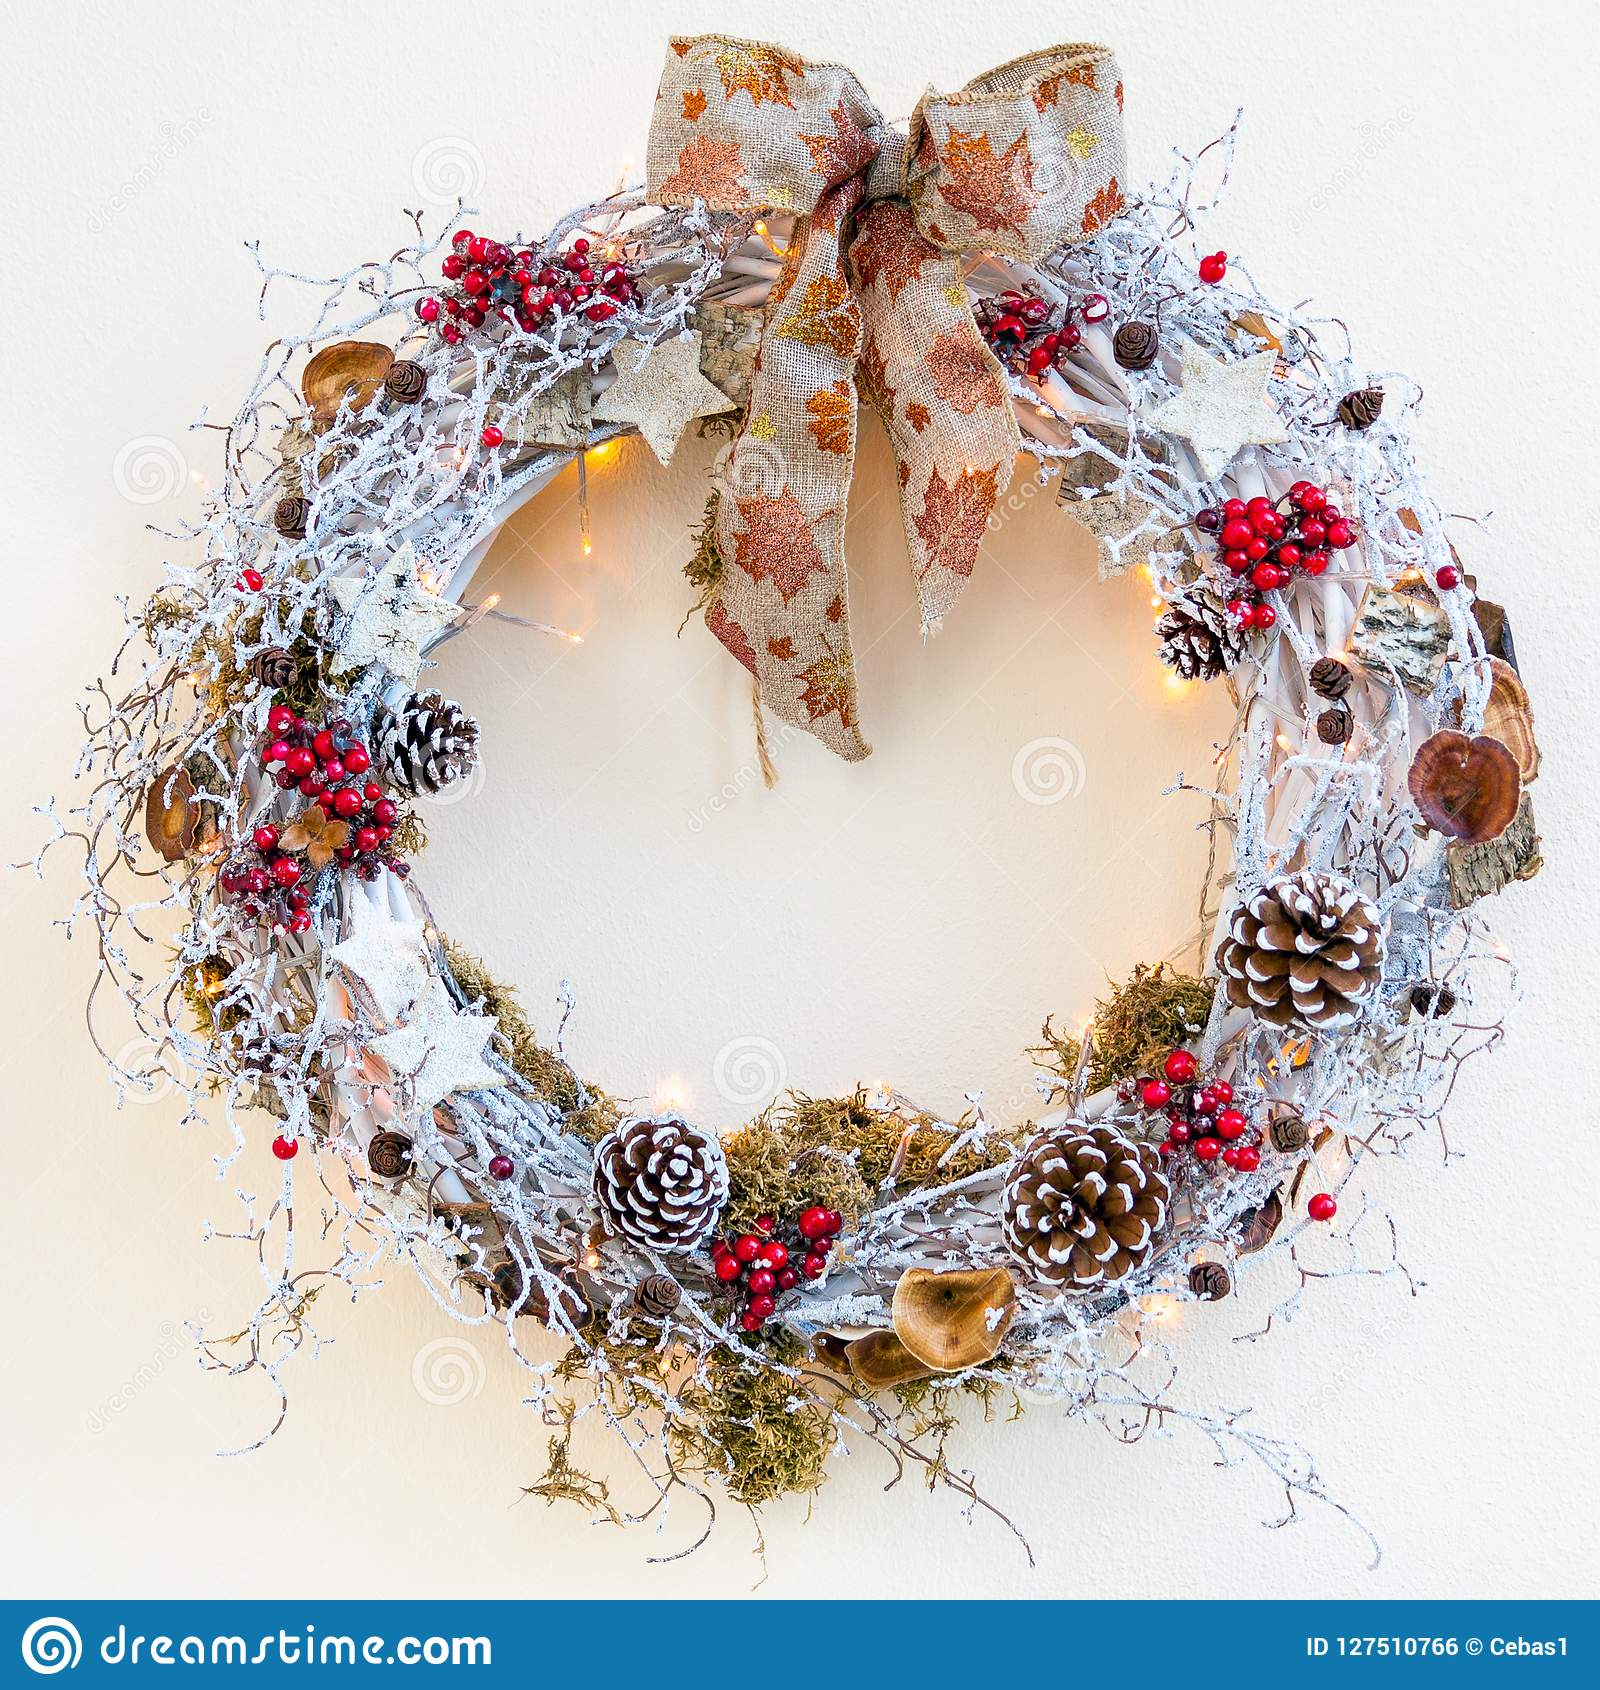 Decorative Christmas wreath picture on neutral background